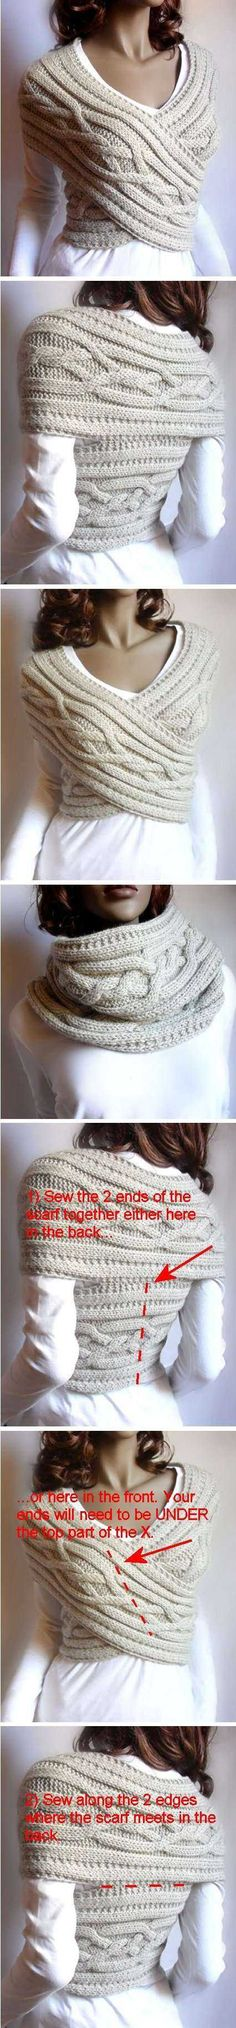 Loop knitting instructions: Knit shawl collar with cable pattern- Loop Strickanleitung: Schalkragen mit Zopfmuster stricken Loop knitting instructions E - Knitting Projects, Crochet Projects, Sewing Projects, Sewing Tips, Knitting Patterns, Crochet Patterns, Cowl Patterns, Fun Patterns, Vest Pattern